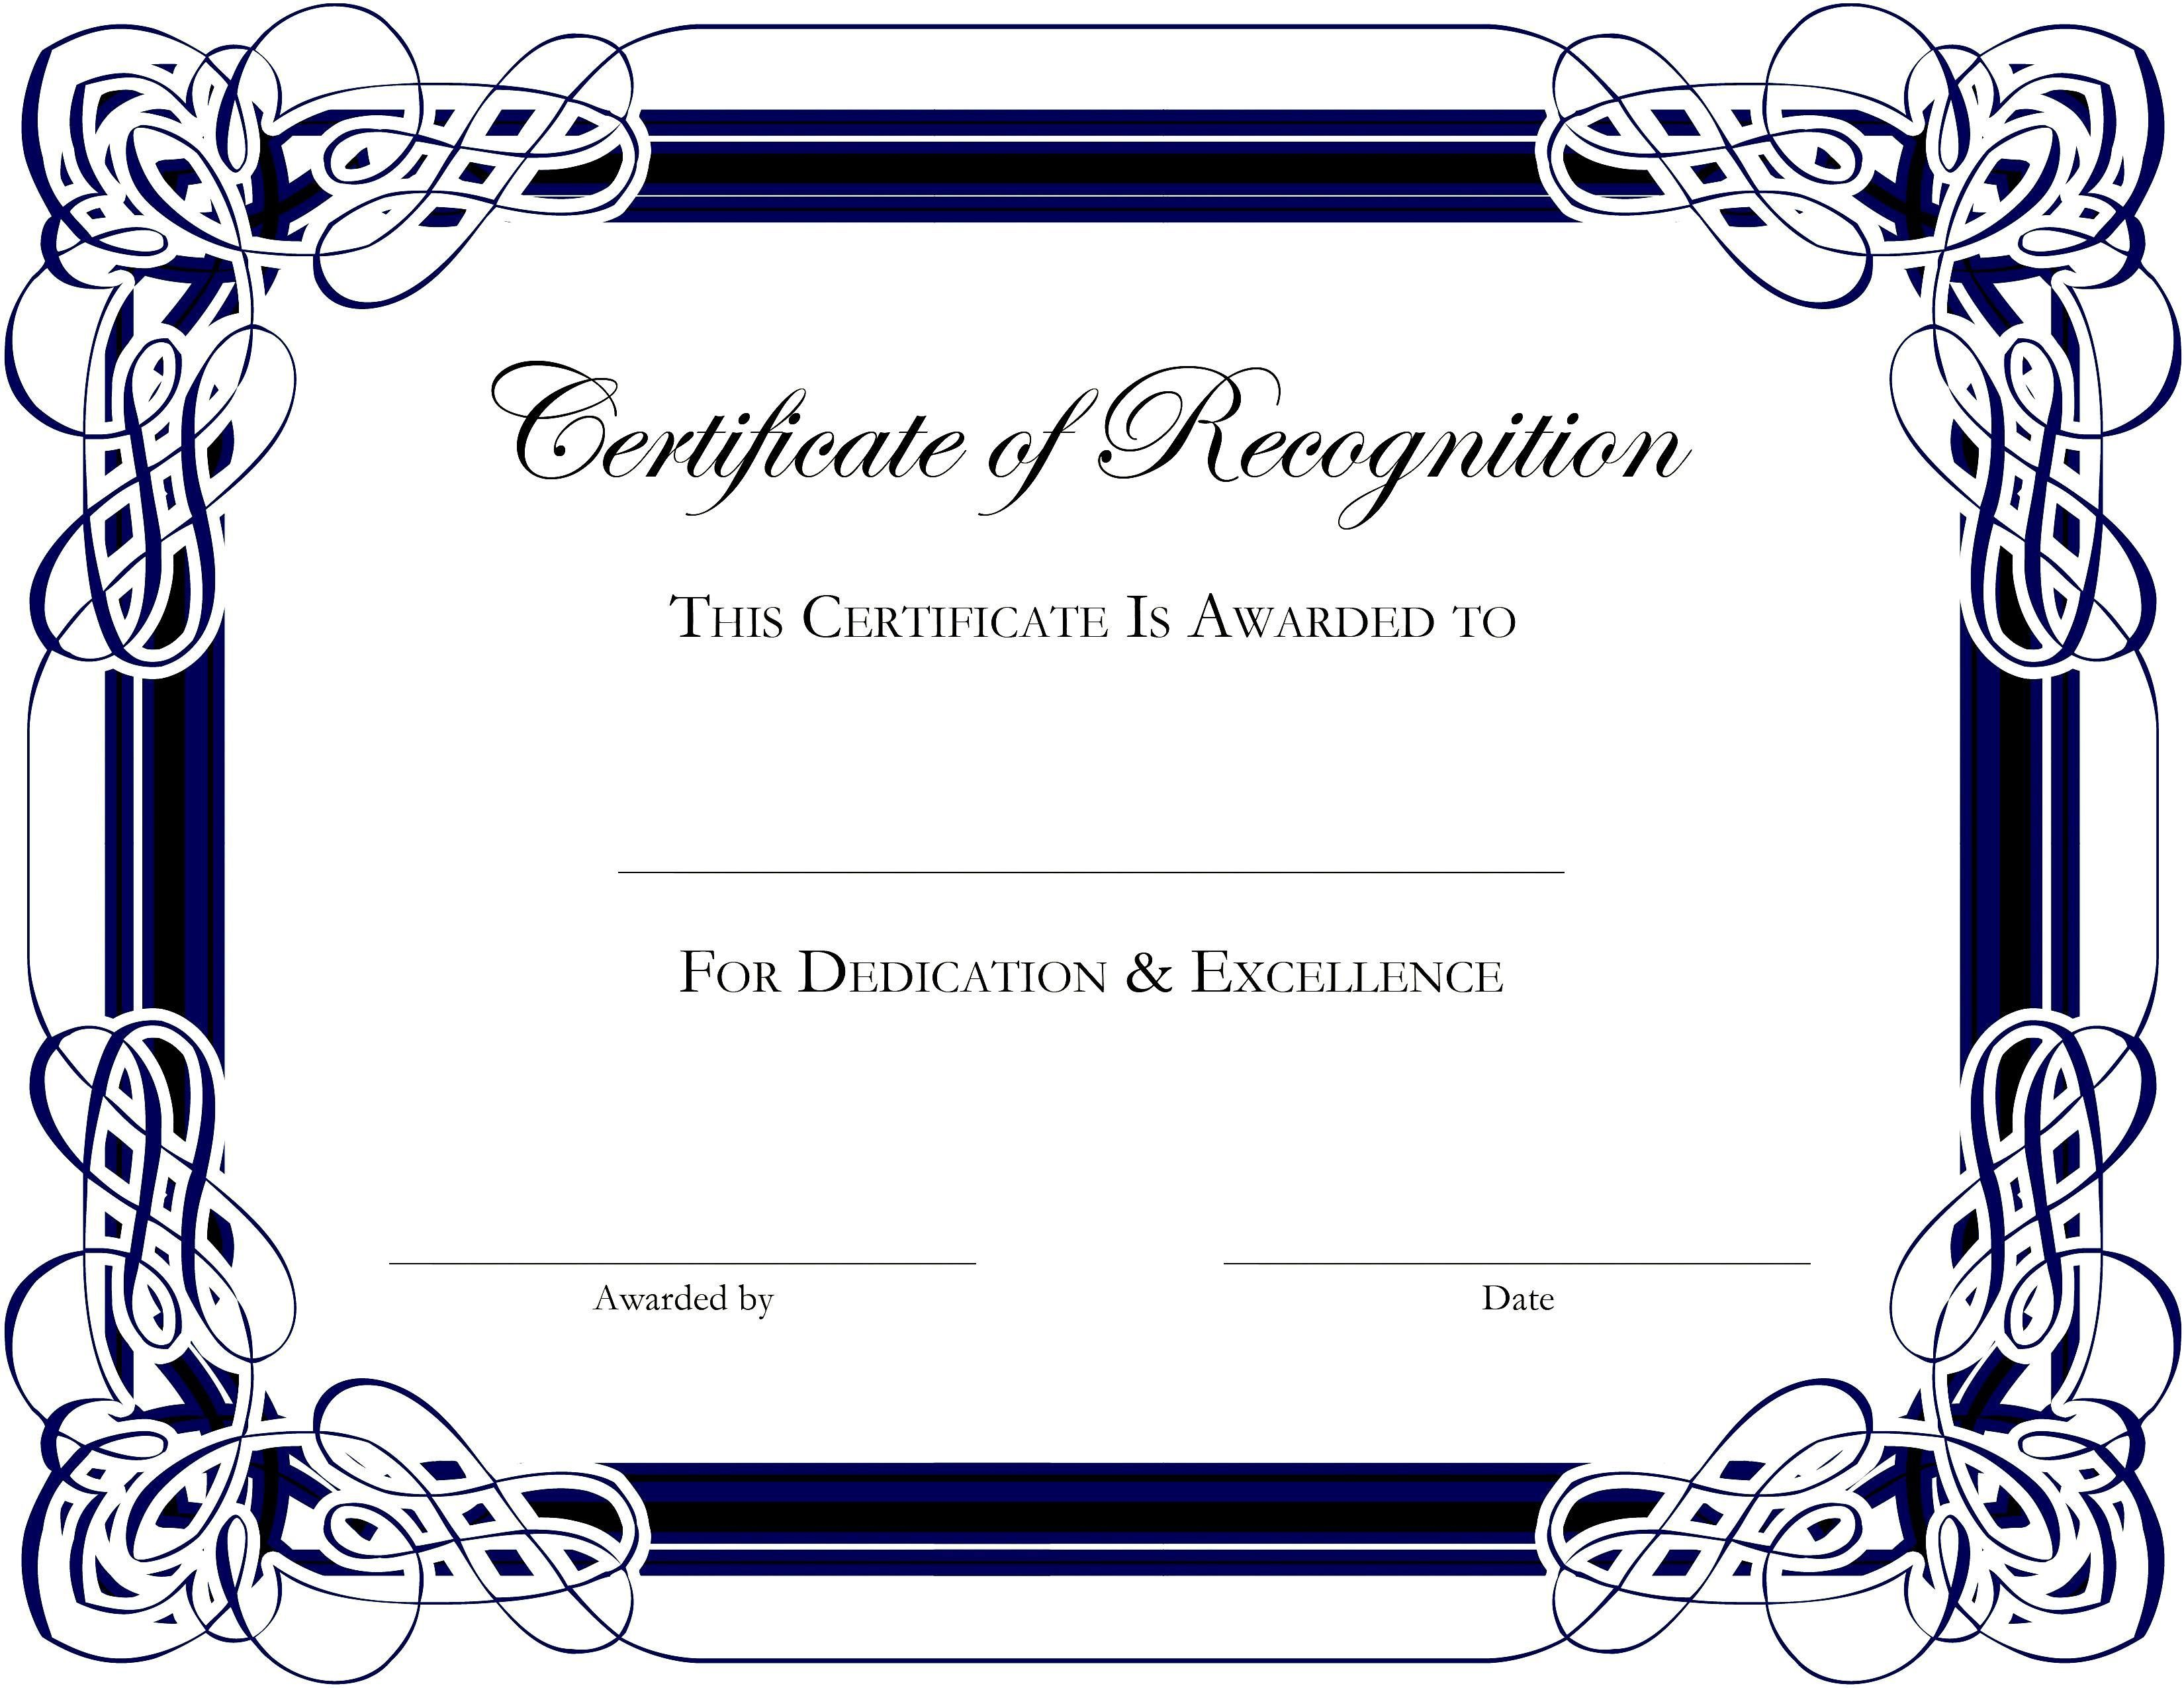 000 Top Microsoft Publisher Free Template Concept  Certificate Download M Magazine